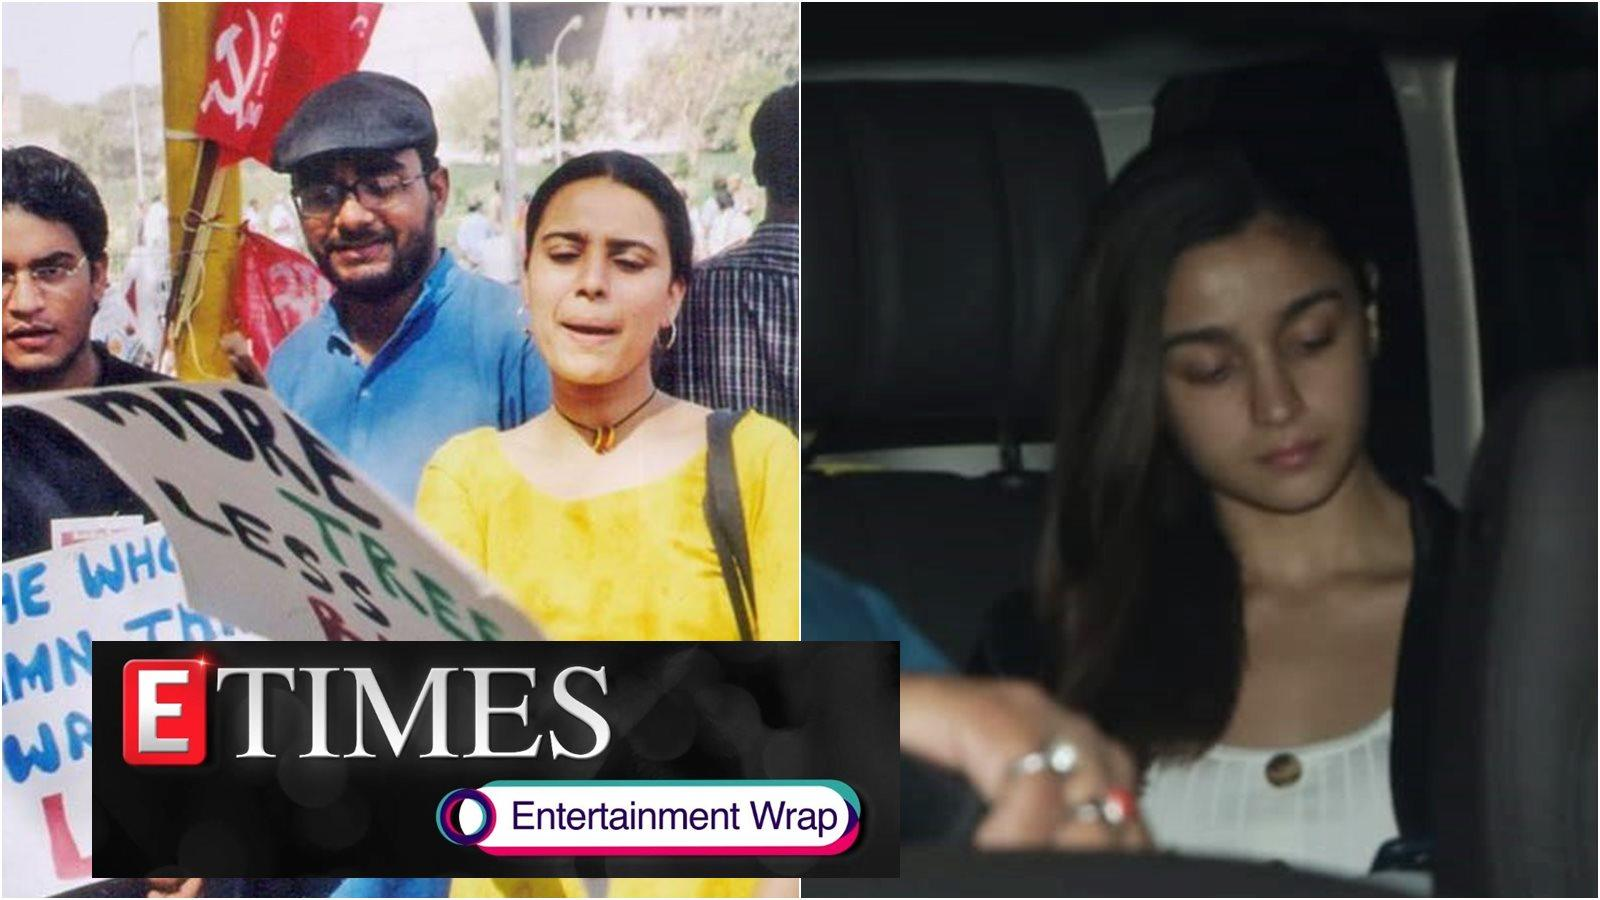 swara-bhasker-gets-trolled-for-supporting-jnu-protest-alia-bhatt-visits-close-friend-priyanka-chopra-at-her-residence-in-mumbai-and-more-